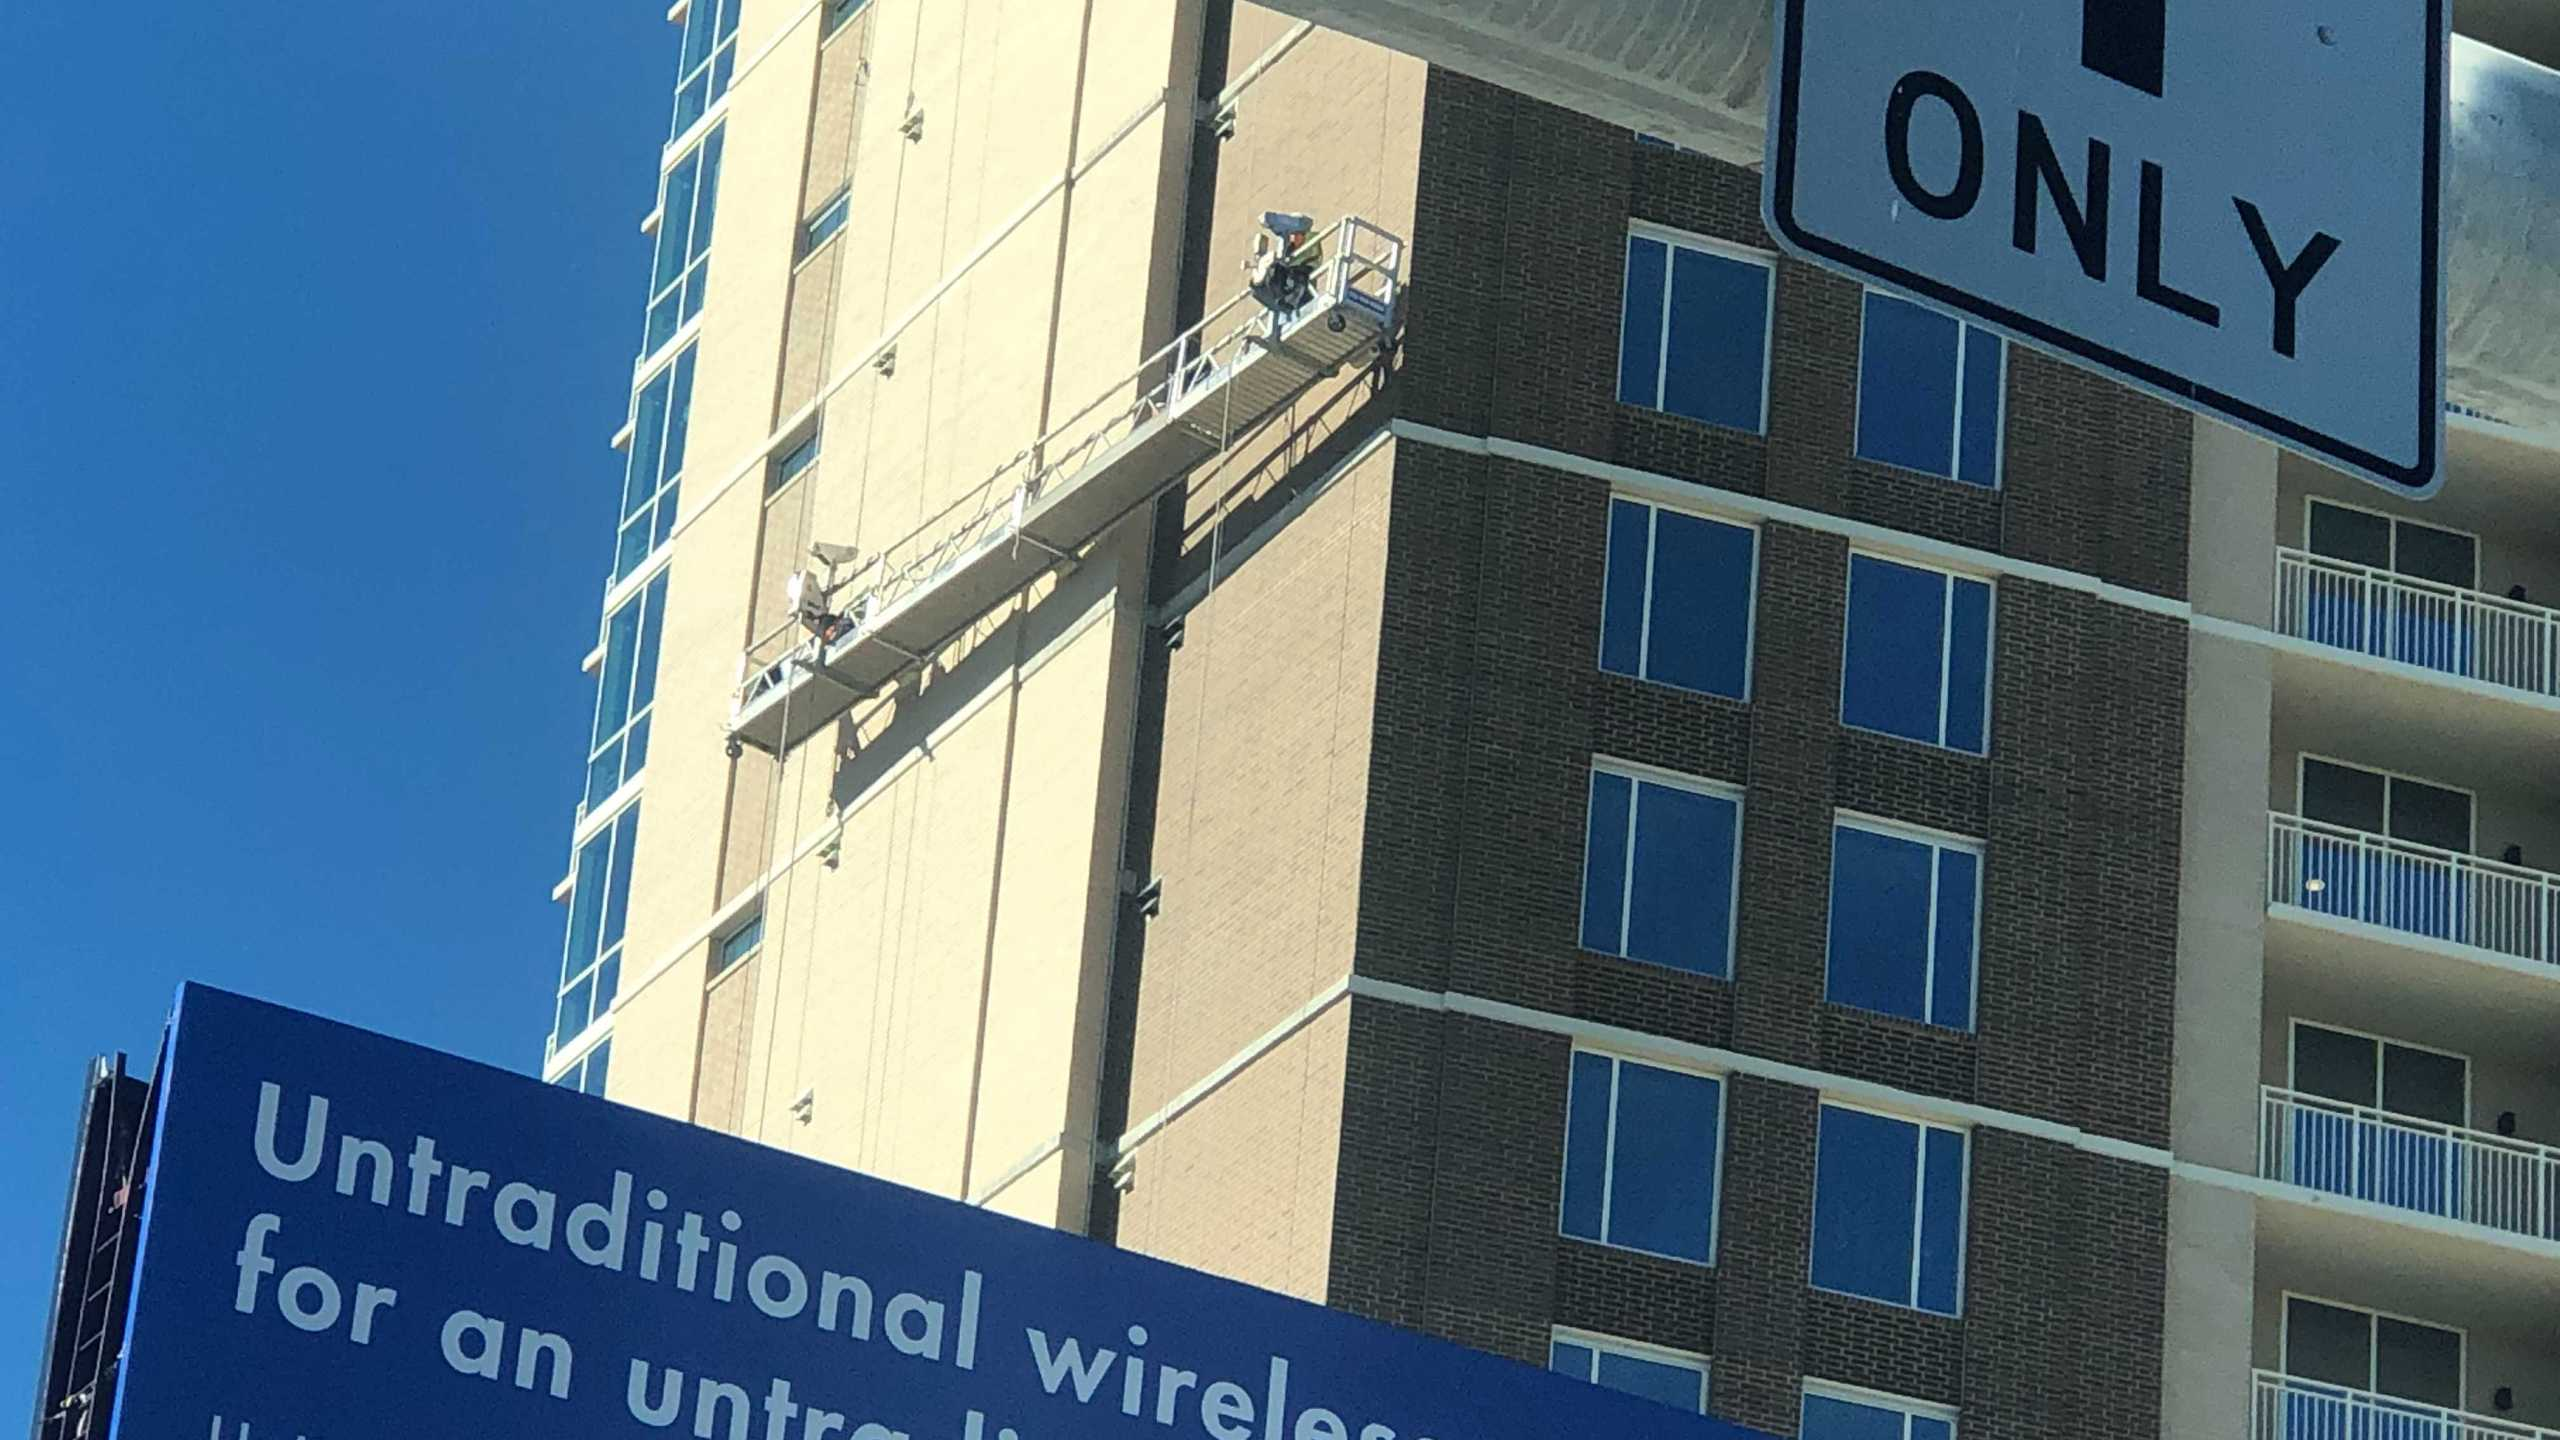 """A """"scaffolding malfunction"""" at a construction site left 2 people """"hanging from ropes"""" near I-35 and East 12 Street, ATCEMS said Thursday. (KXAN photo/Ed Zavala)"""